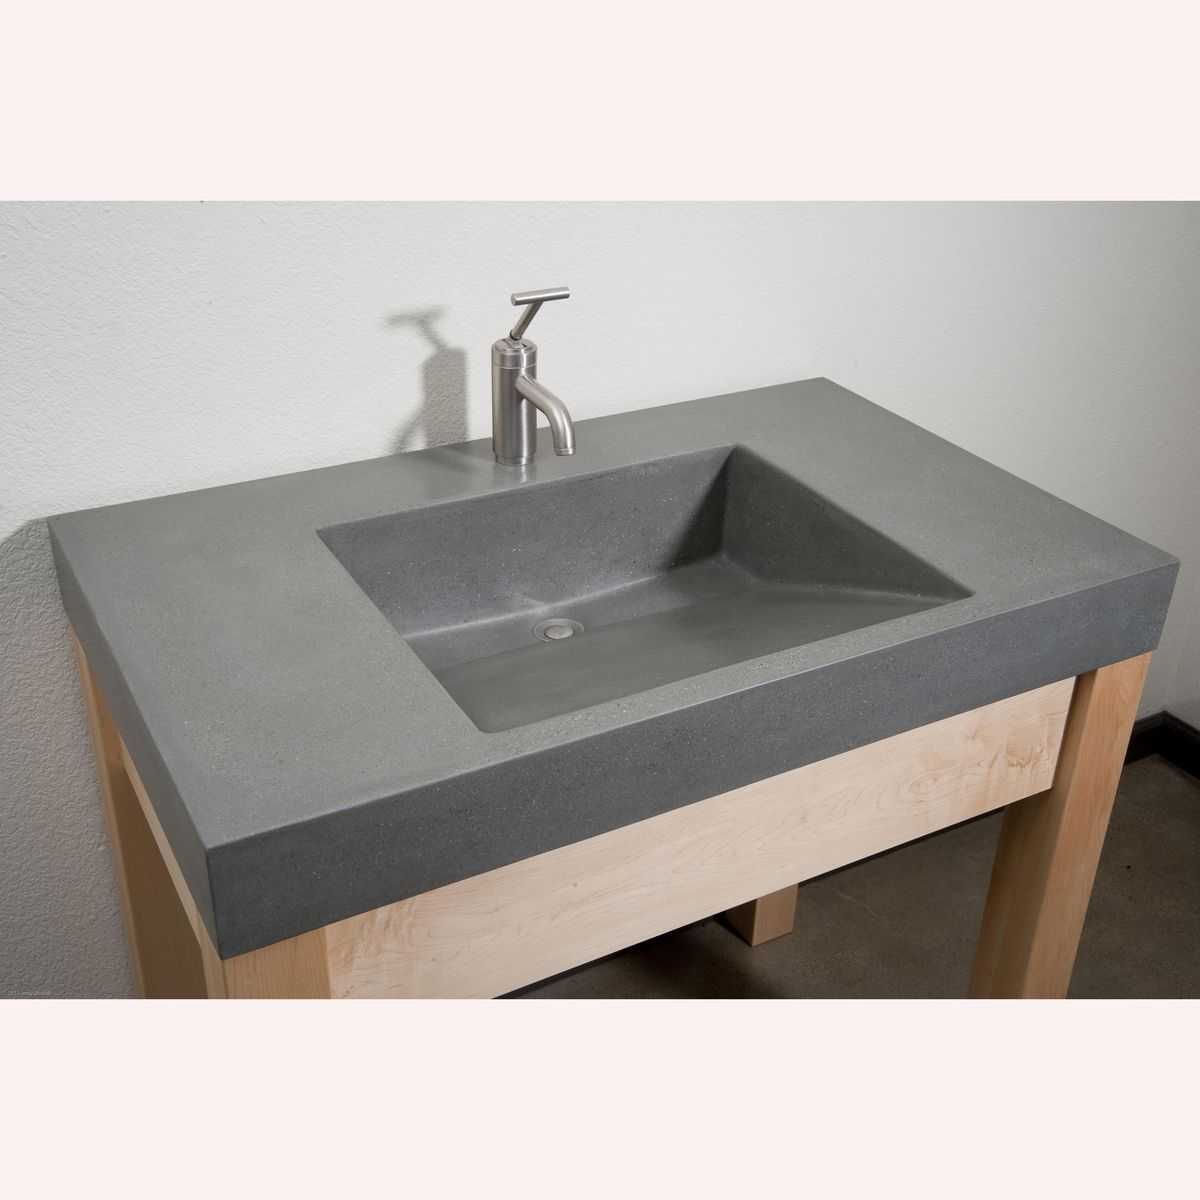 Polished Concrete Vanity With Integrated Ramp Sink On